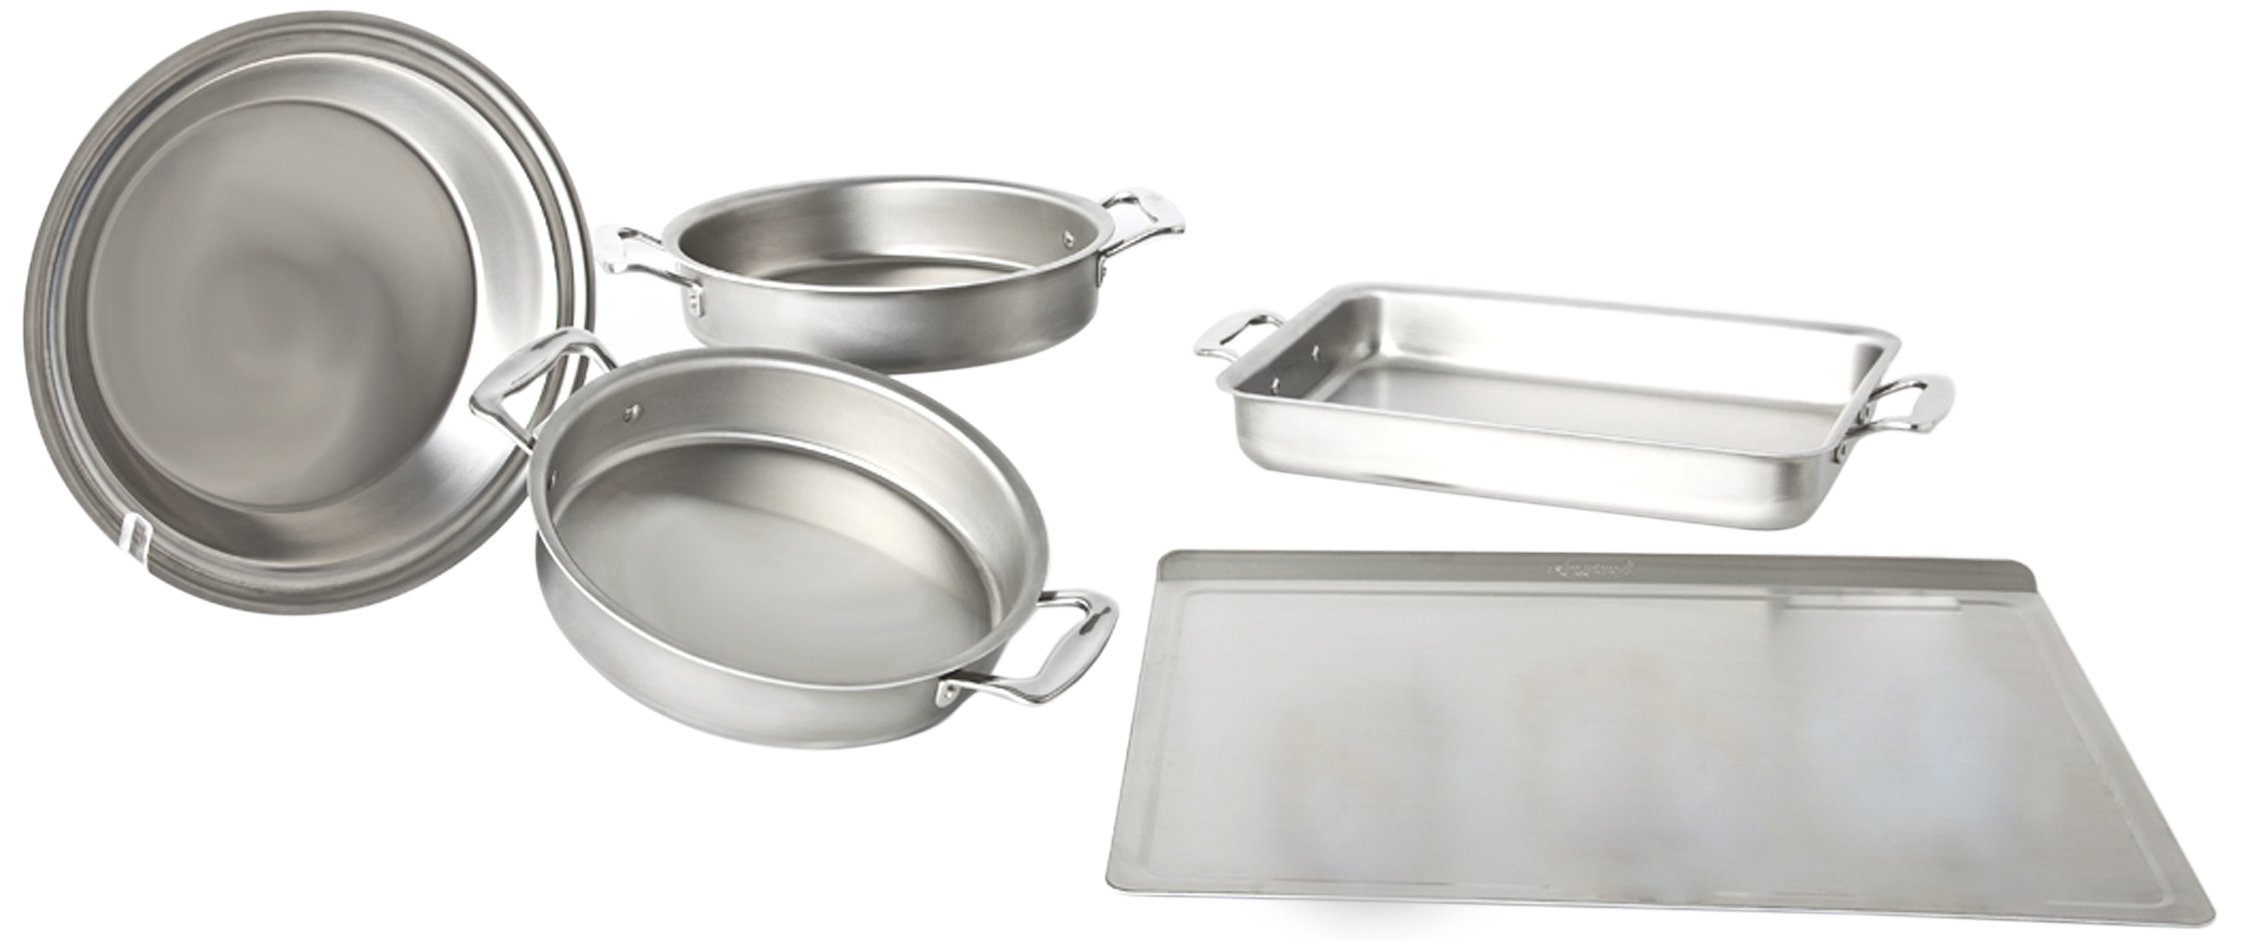 360 Cookware Premium Stainless Steel 5 Piece Bakeware Set by 360 Bakeware